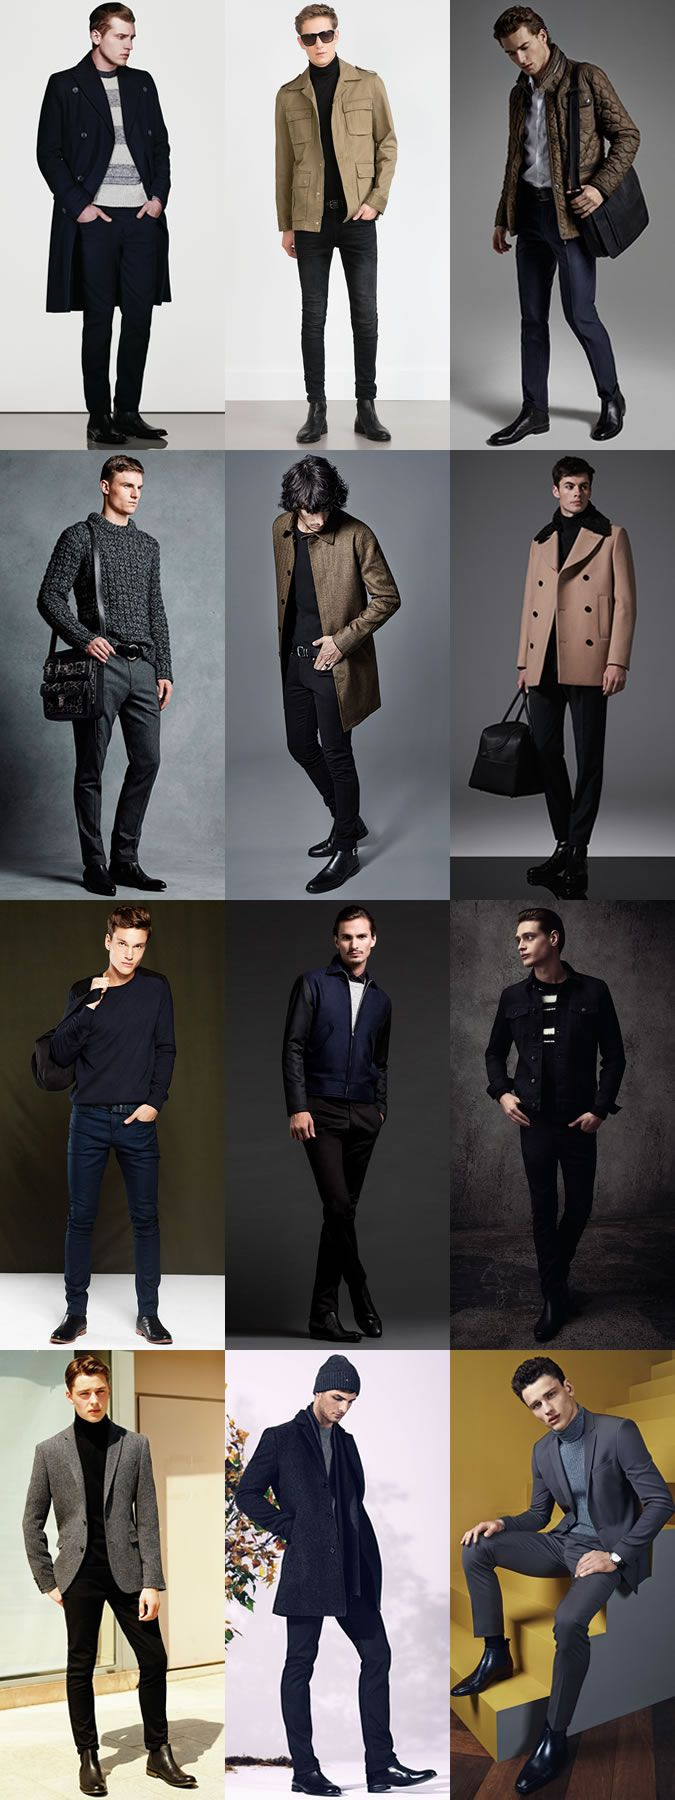 5 Classic Men's Autumn/Winter Boot Styles: 2. Chelsea Boots Outfits Lookbook Inspiration